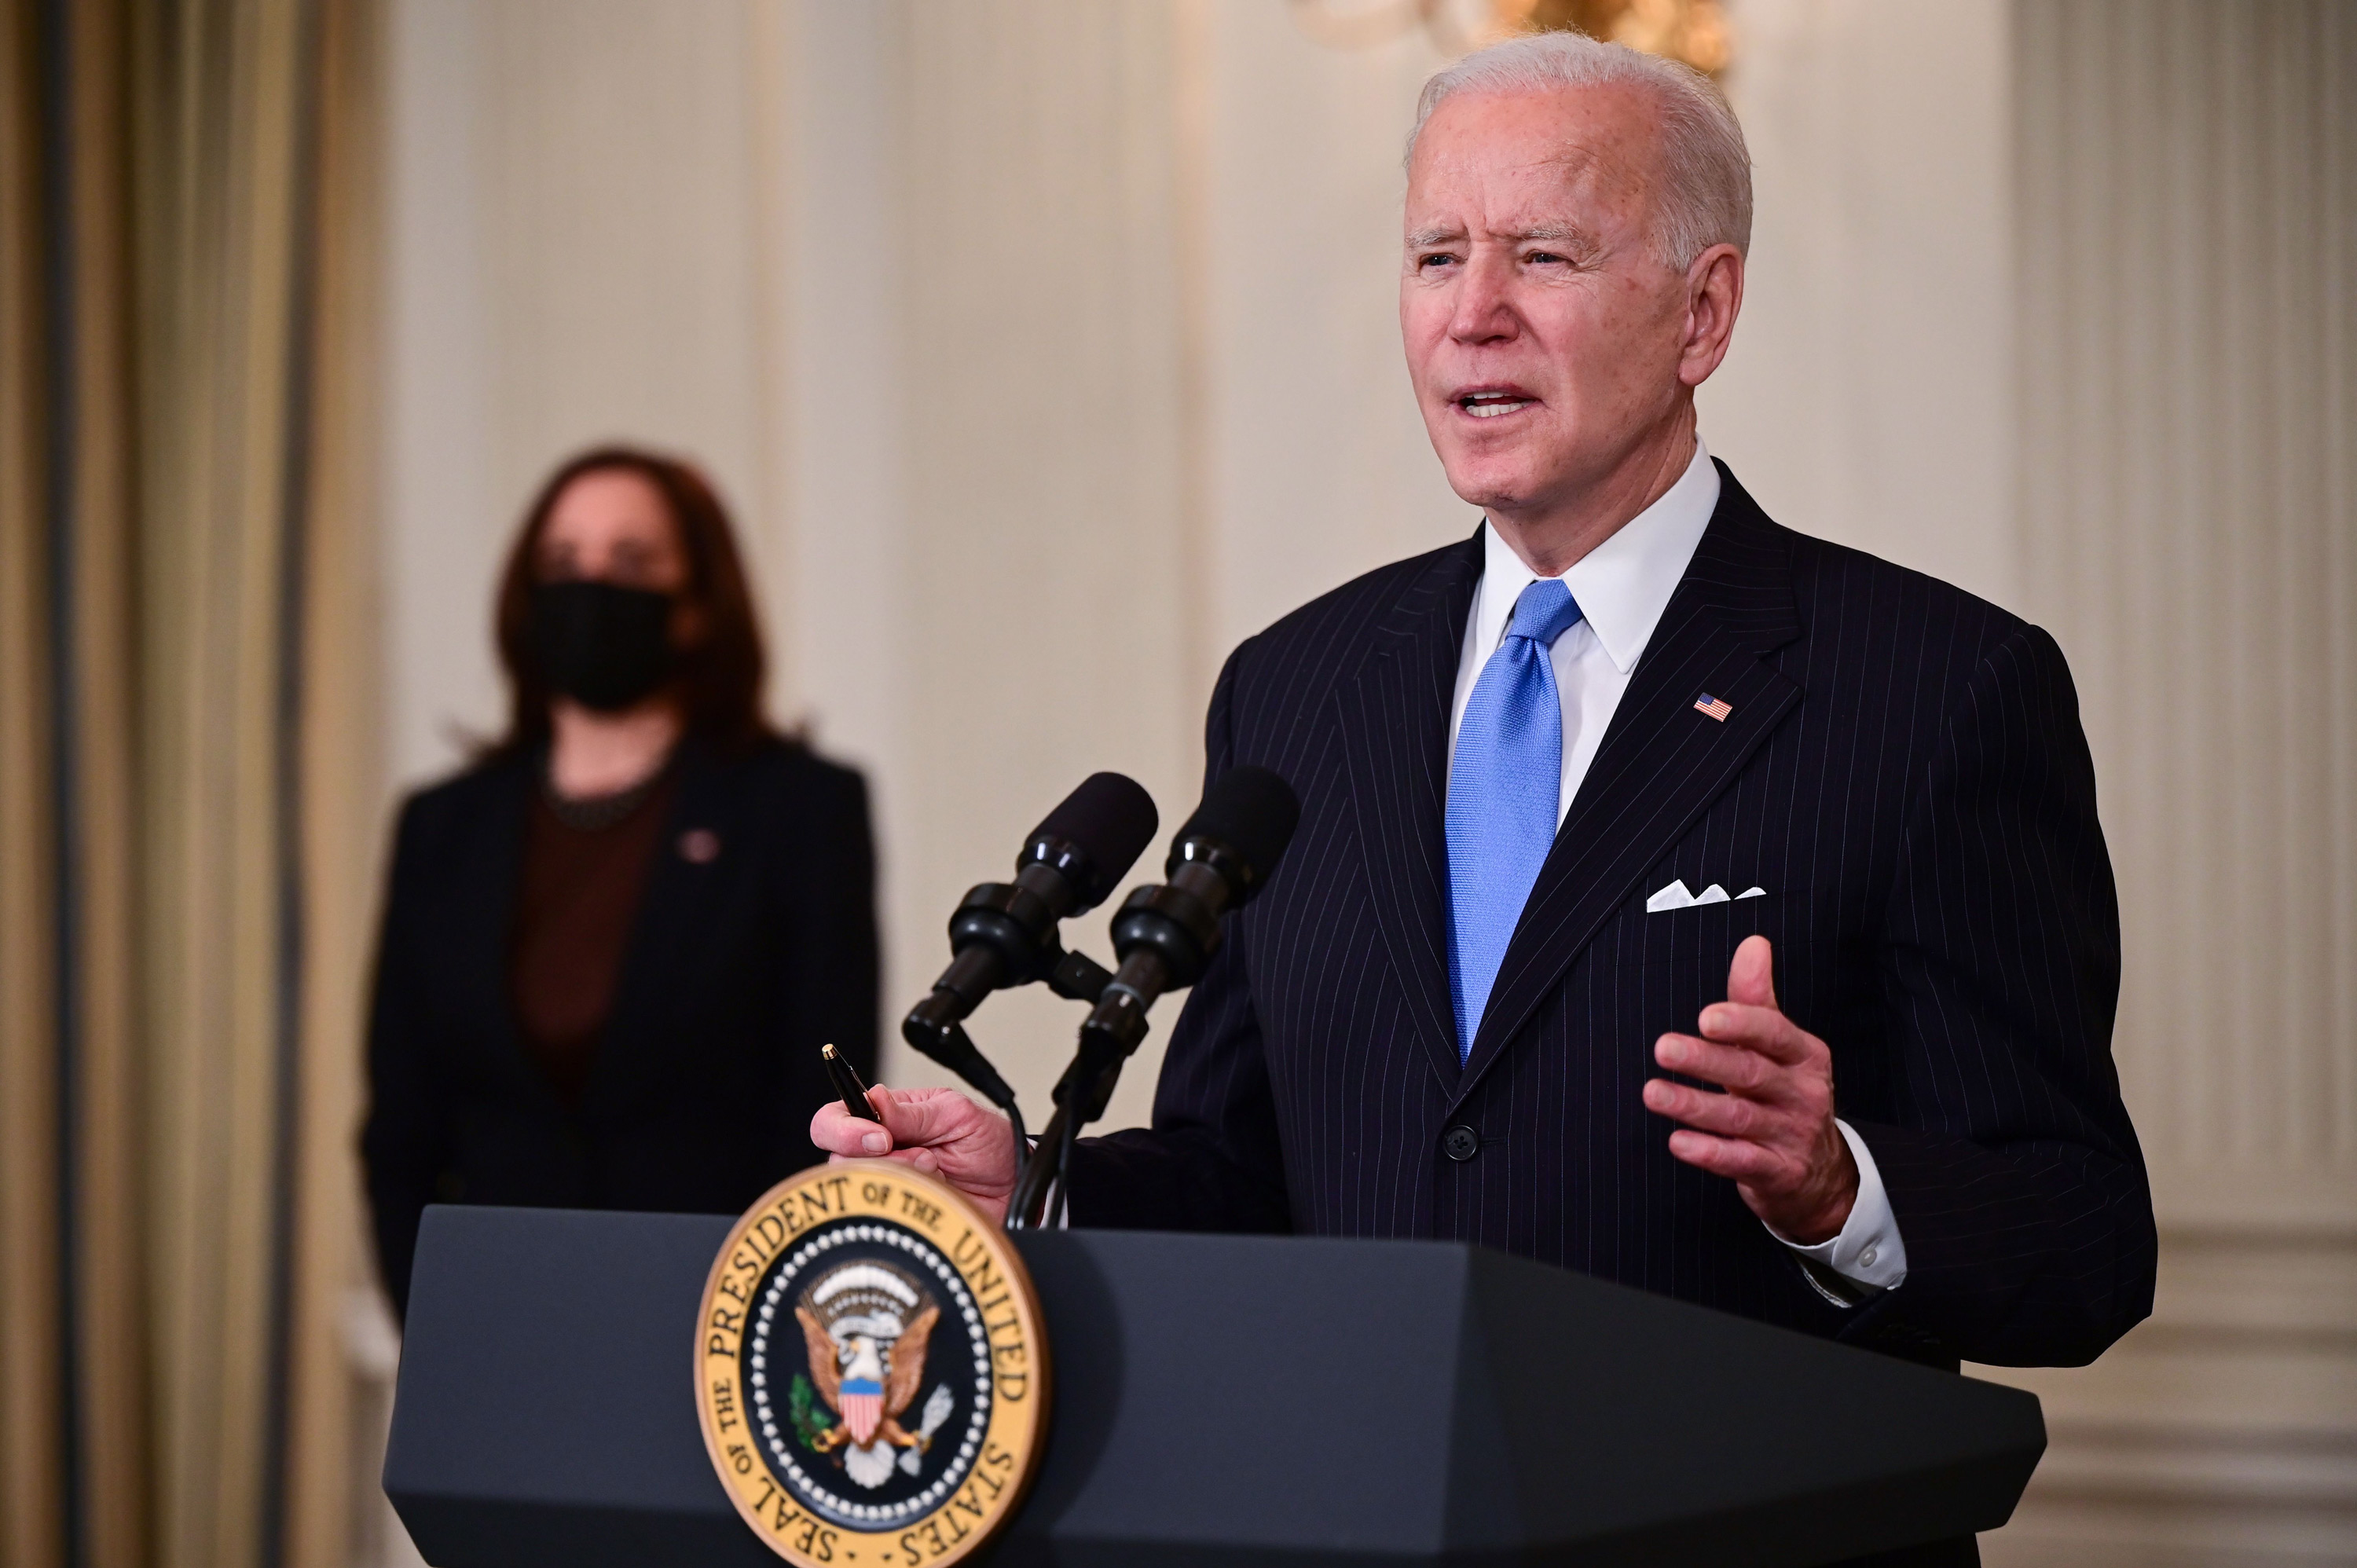 President Joe Biden delivers remarks at the White House in Washington, DC on March 2.